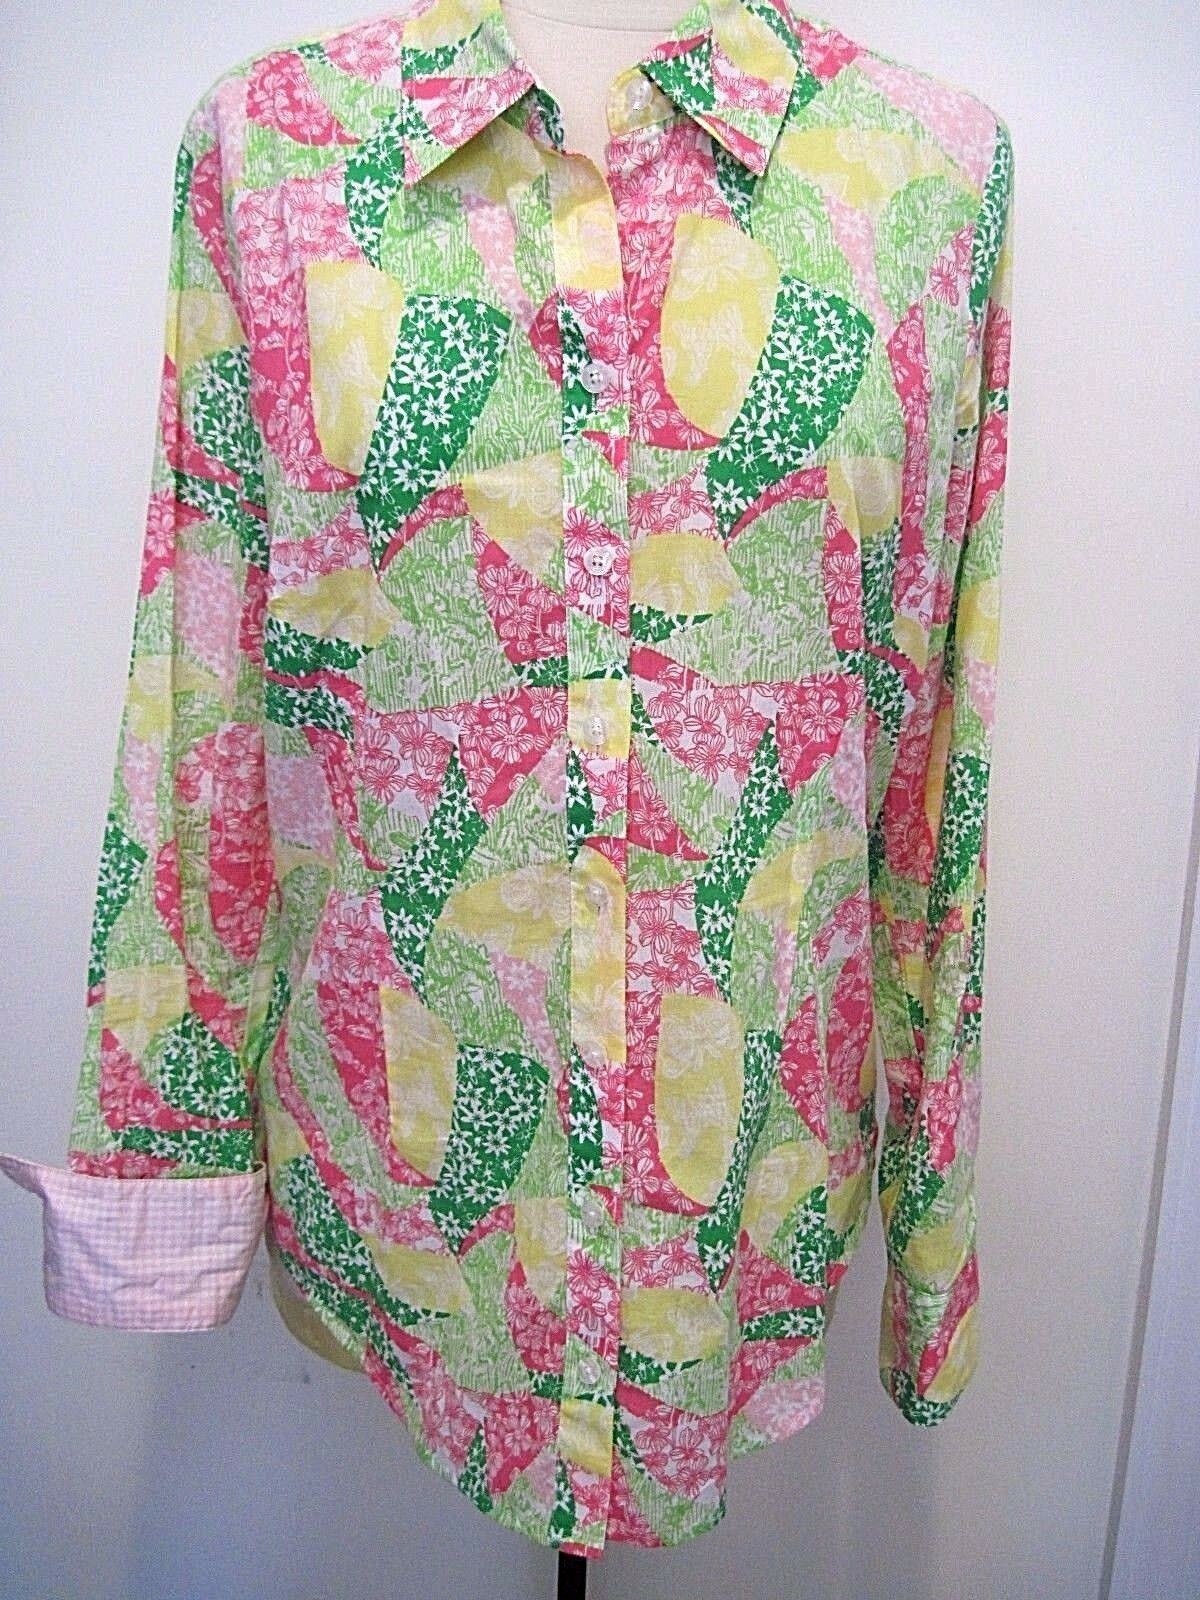 LILLY PULITZER Multicolord Patchwork Design 100% Cotton Button Down Shirt Sz 10